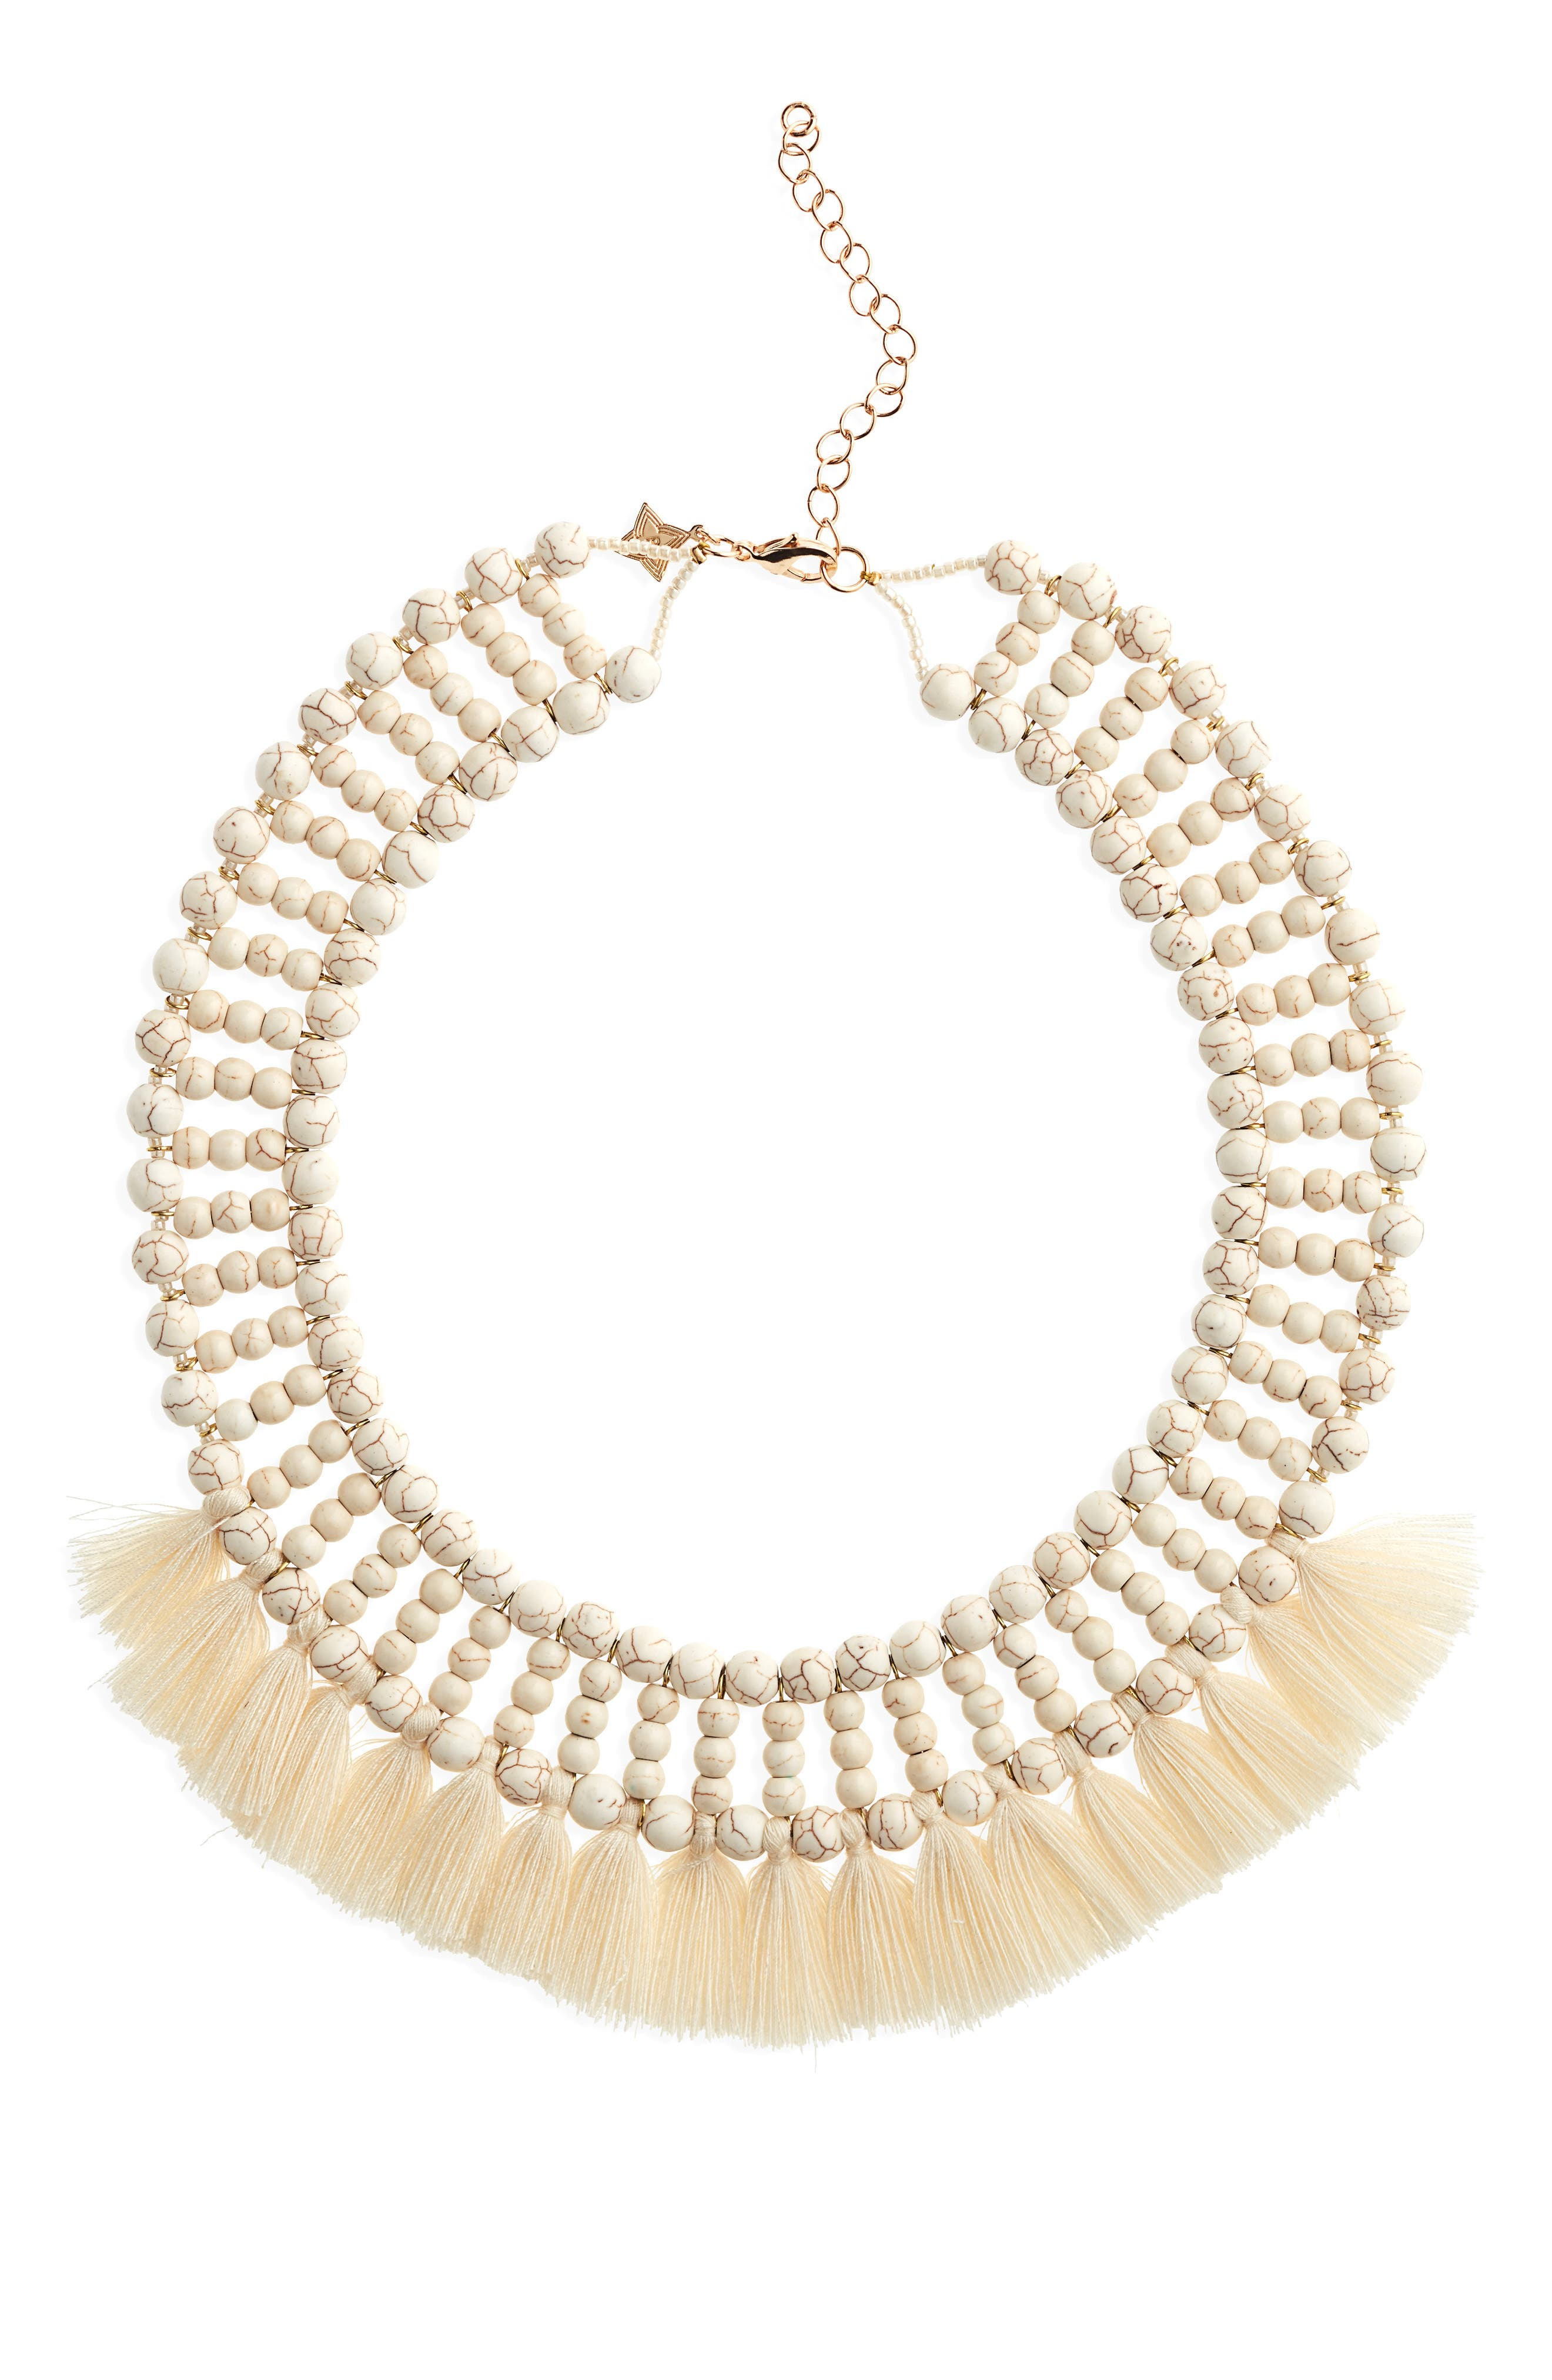 Howlite Tassel Collar Necklace,                             Main thumbnail 1, color,                             100